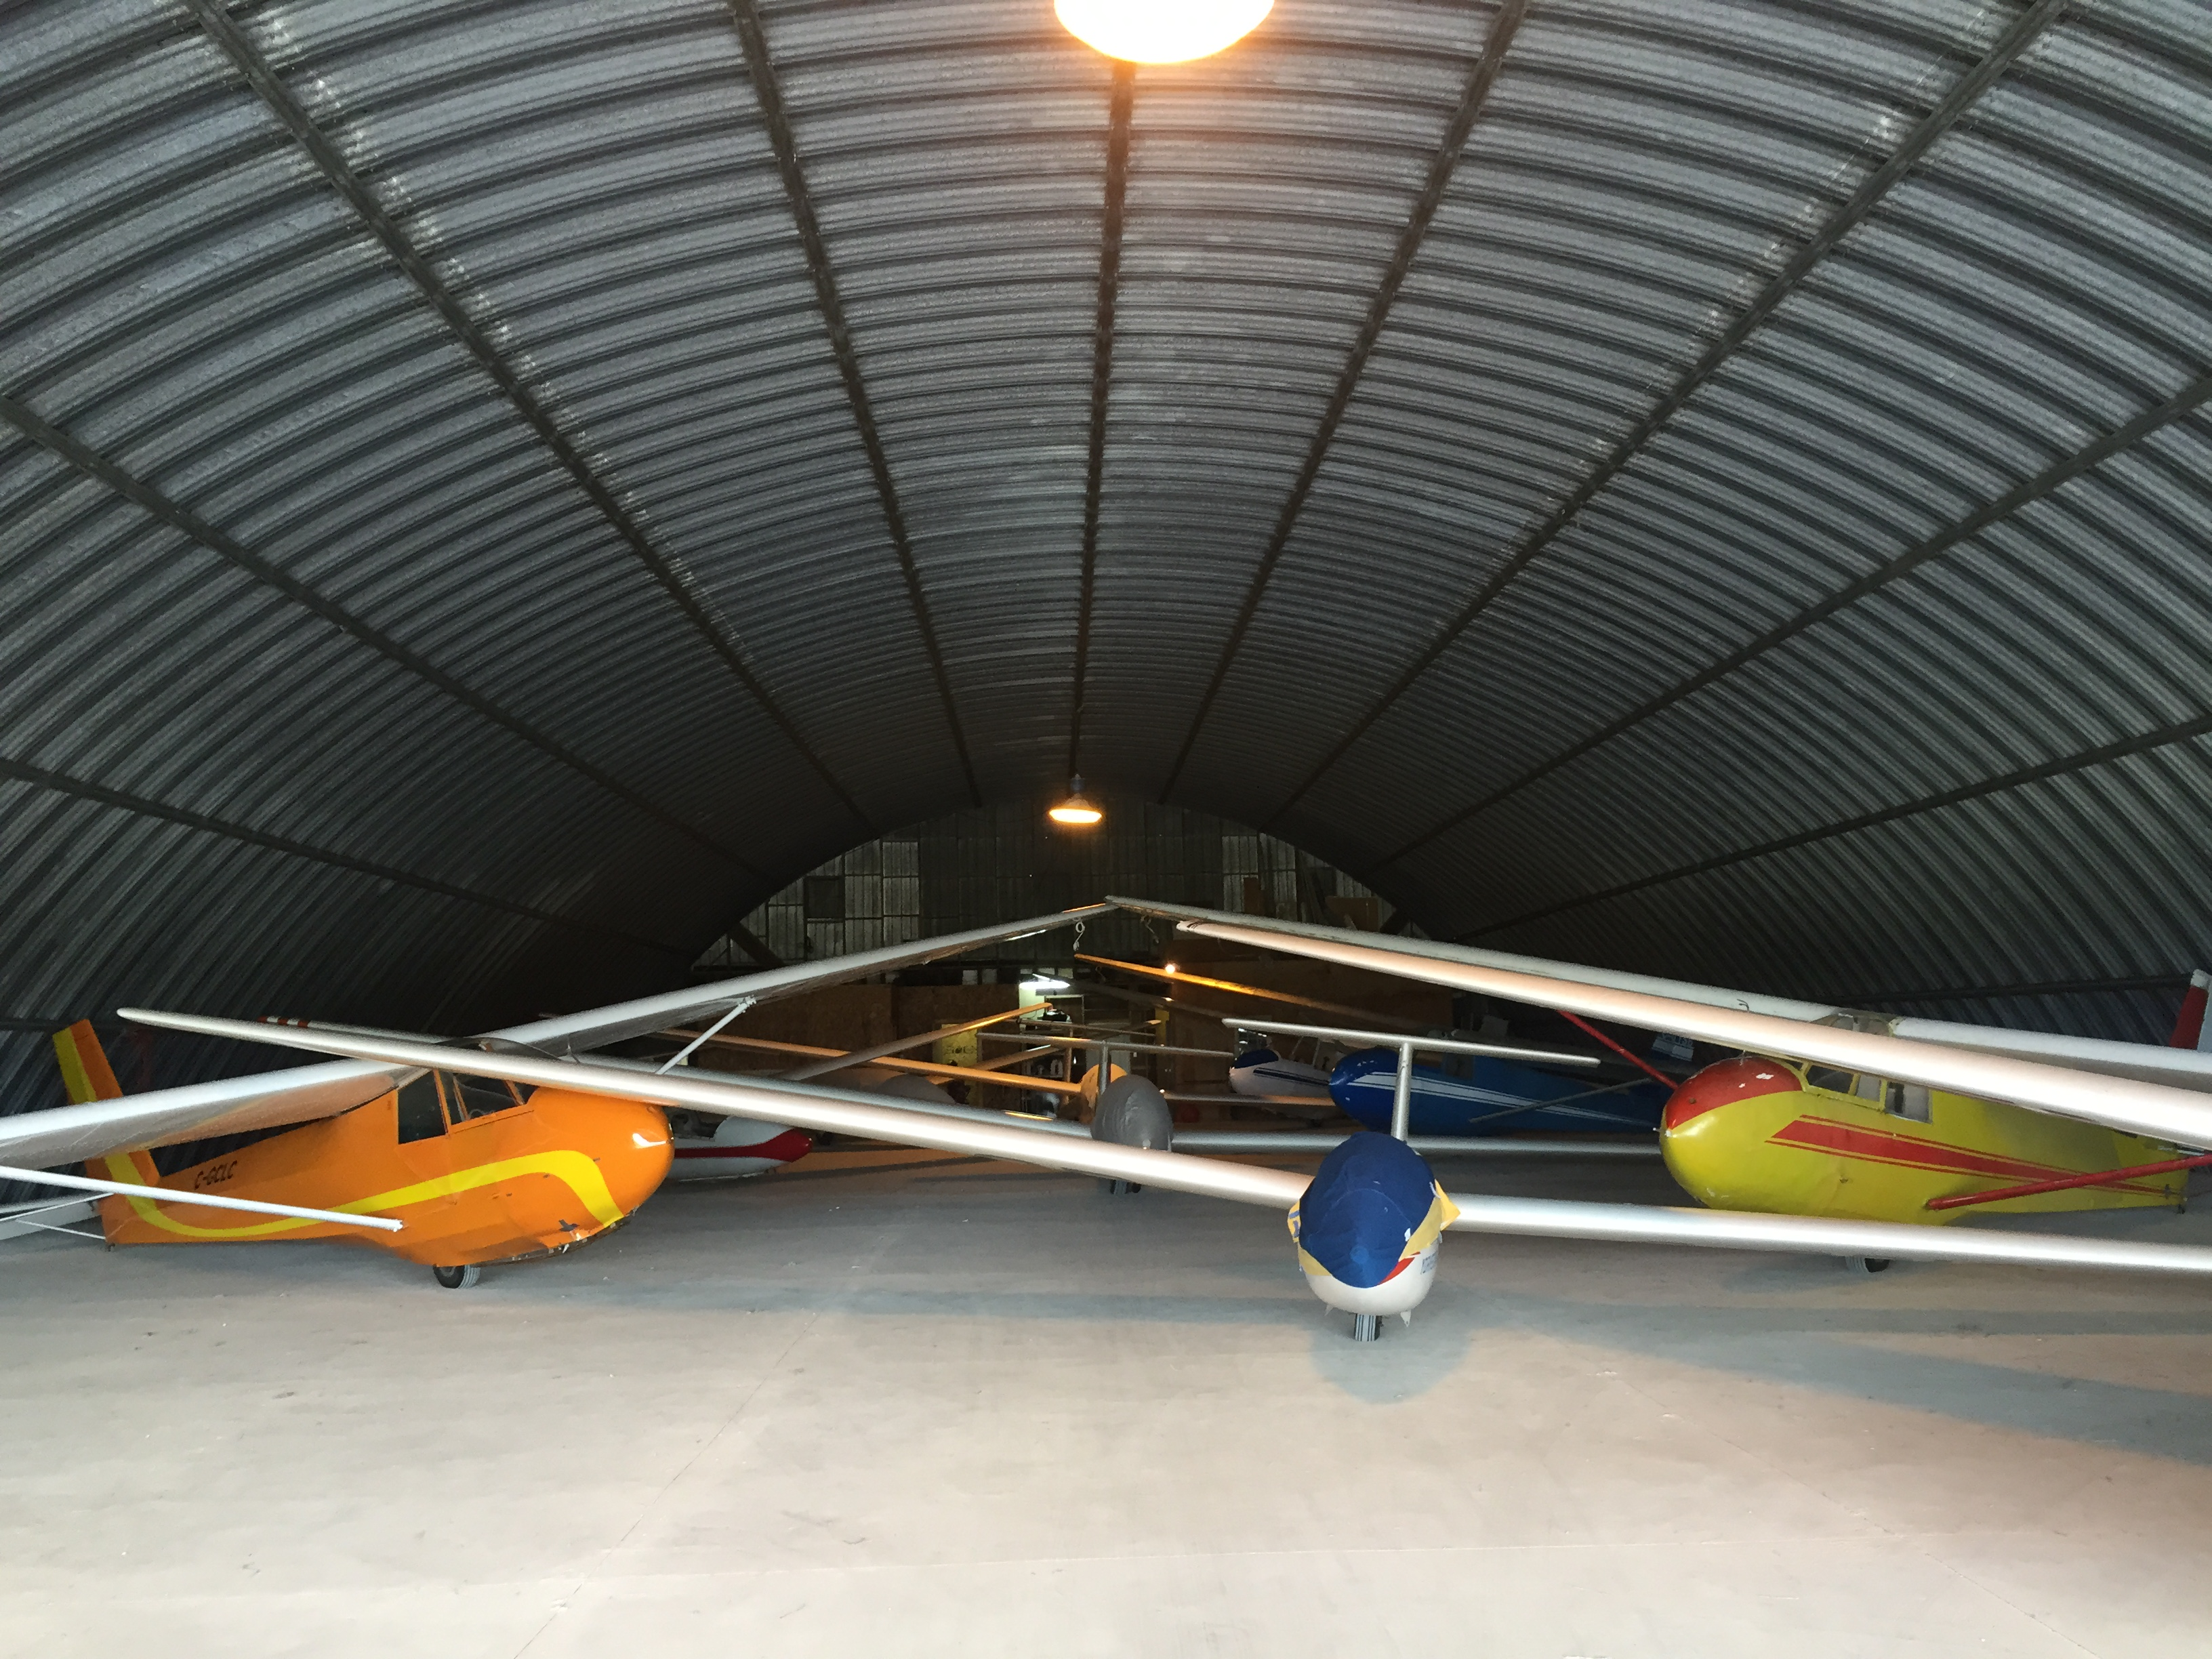 Gliders in a hangar.